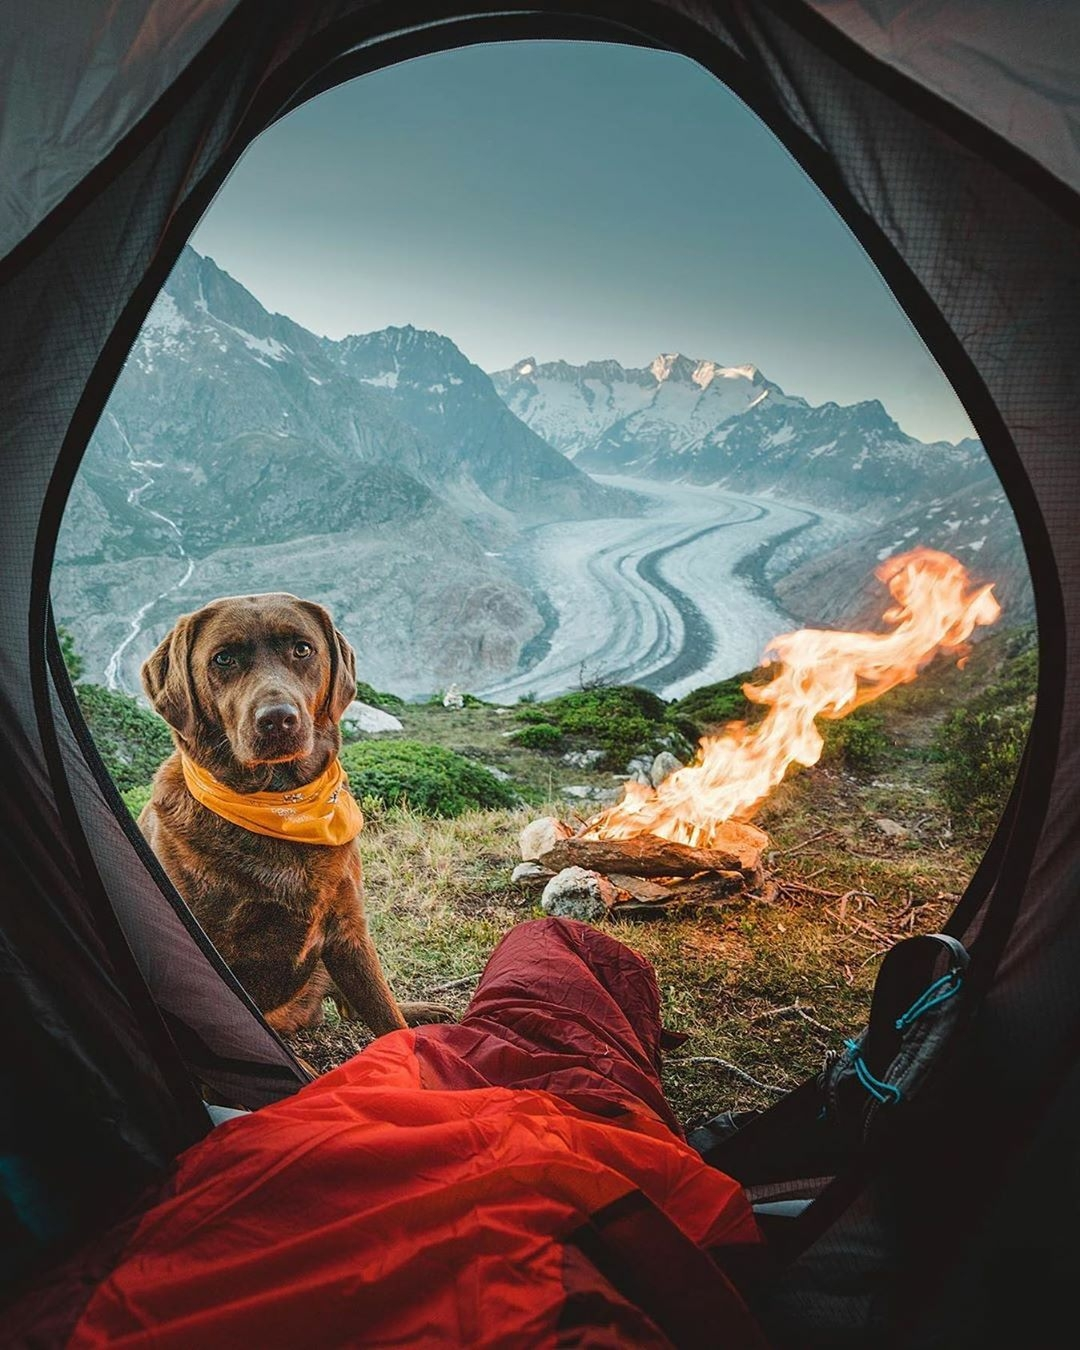 dog looking in tent with mountain scene behind him